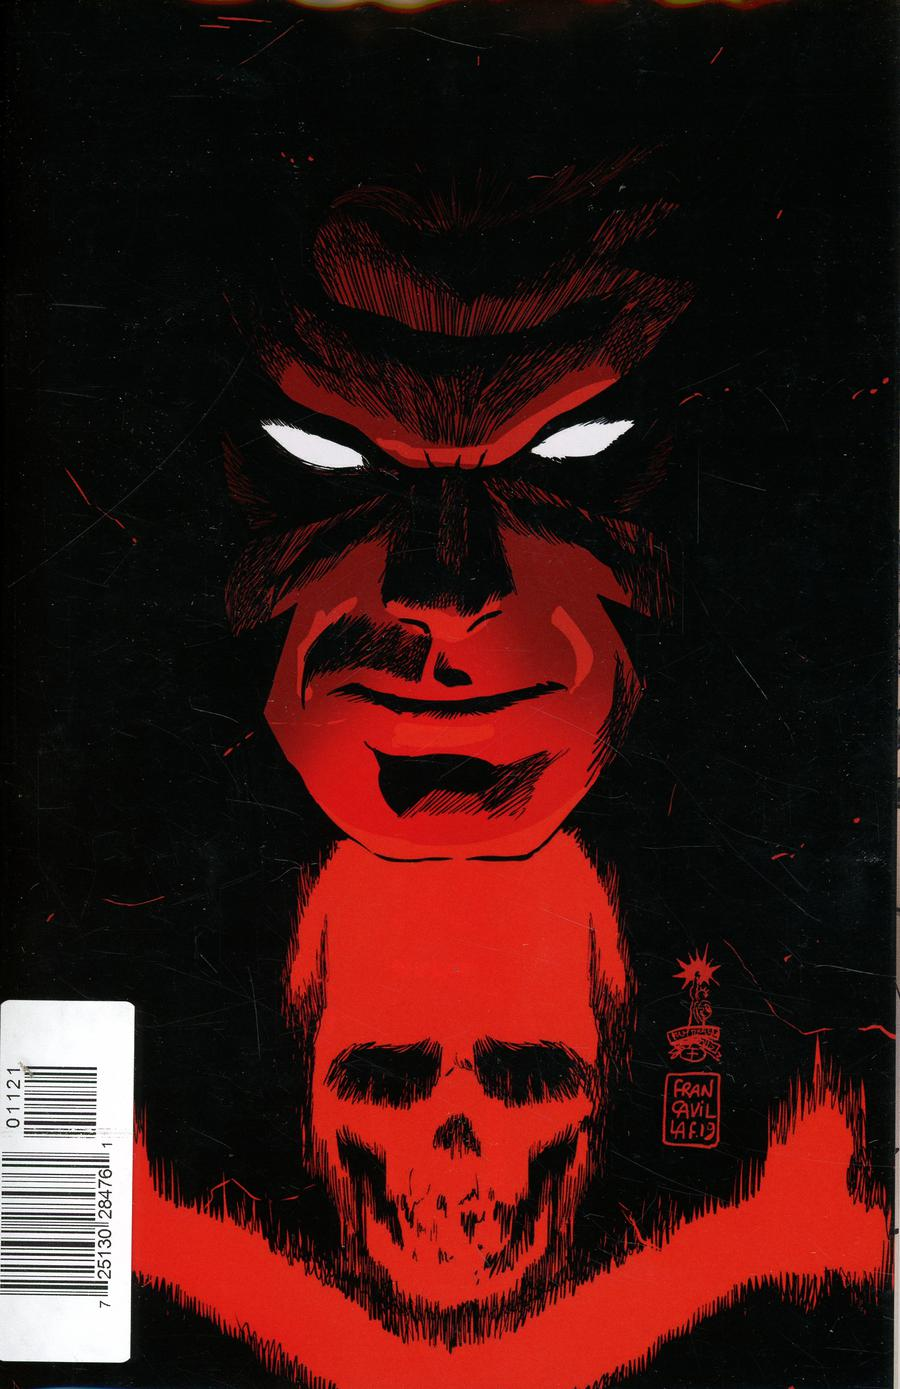 Black Terror Vol 4 #1 Cover N Limited Edition Francesco Francavilla High End Virgin Cover